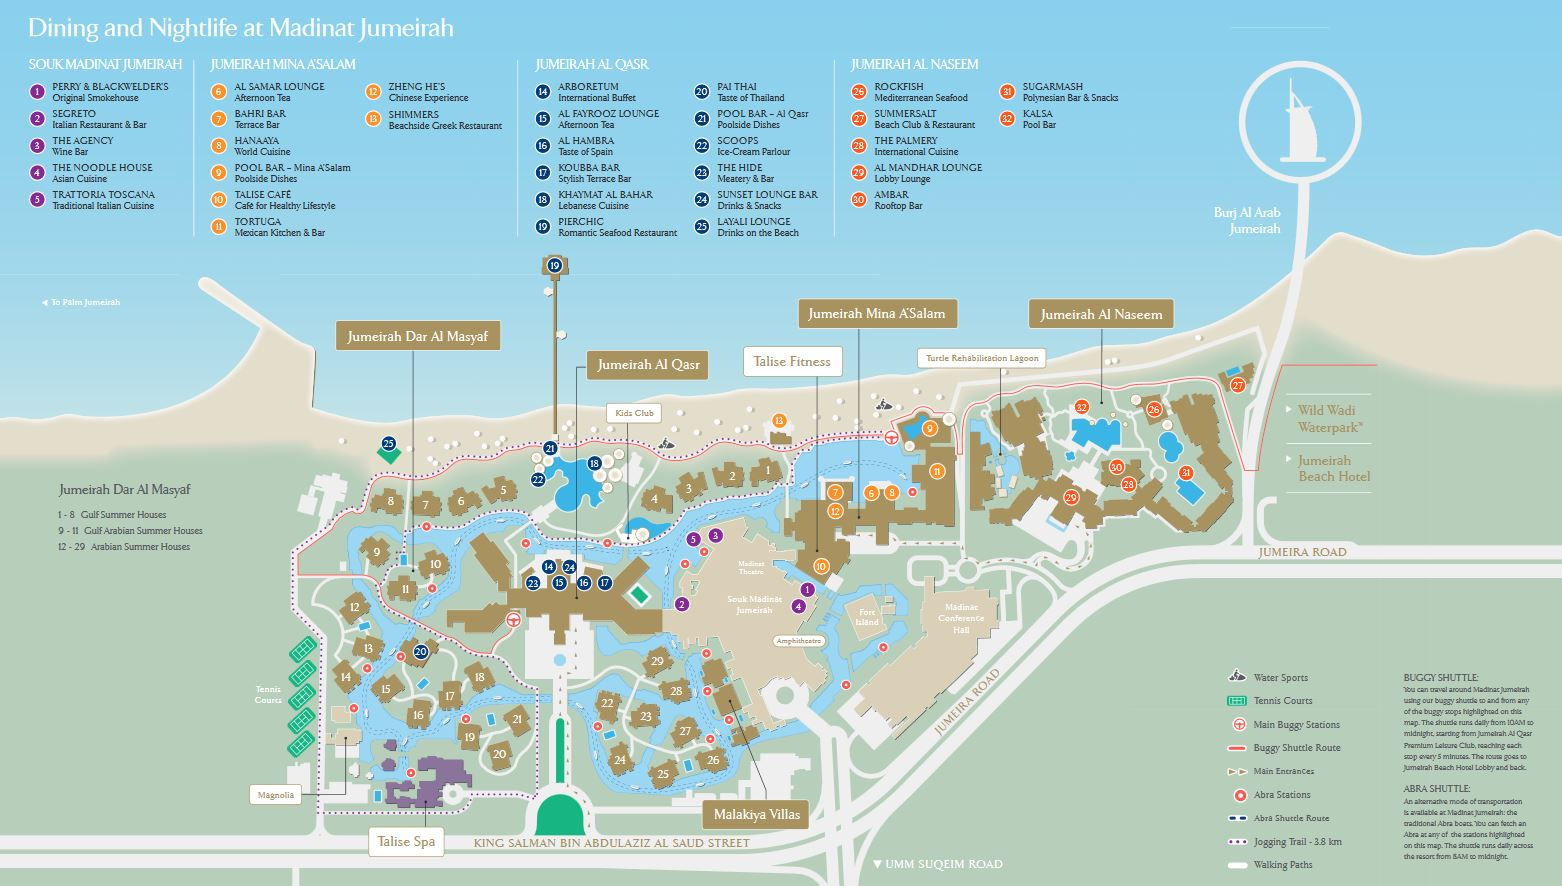 Madinat Jumeirah Map